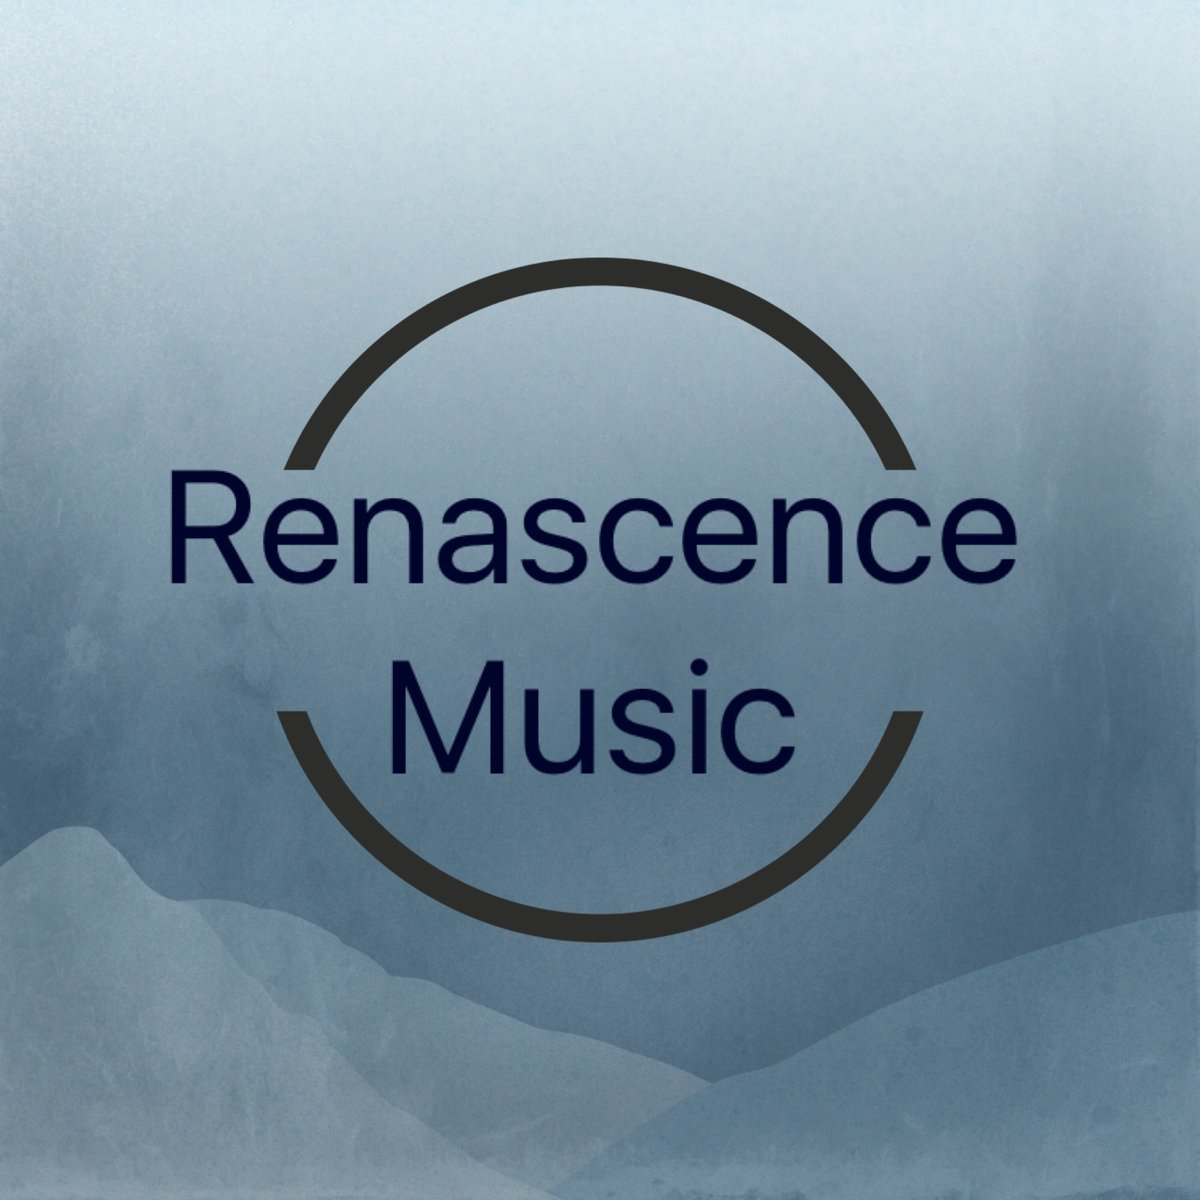 Free streaming of RenascenceMusic is now available https://t.co/71dDjeEZMS newmusic #spotify #downtempo https://t.co/vVzIa5rKD0